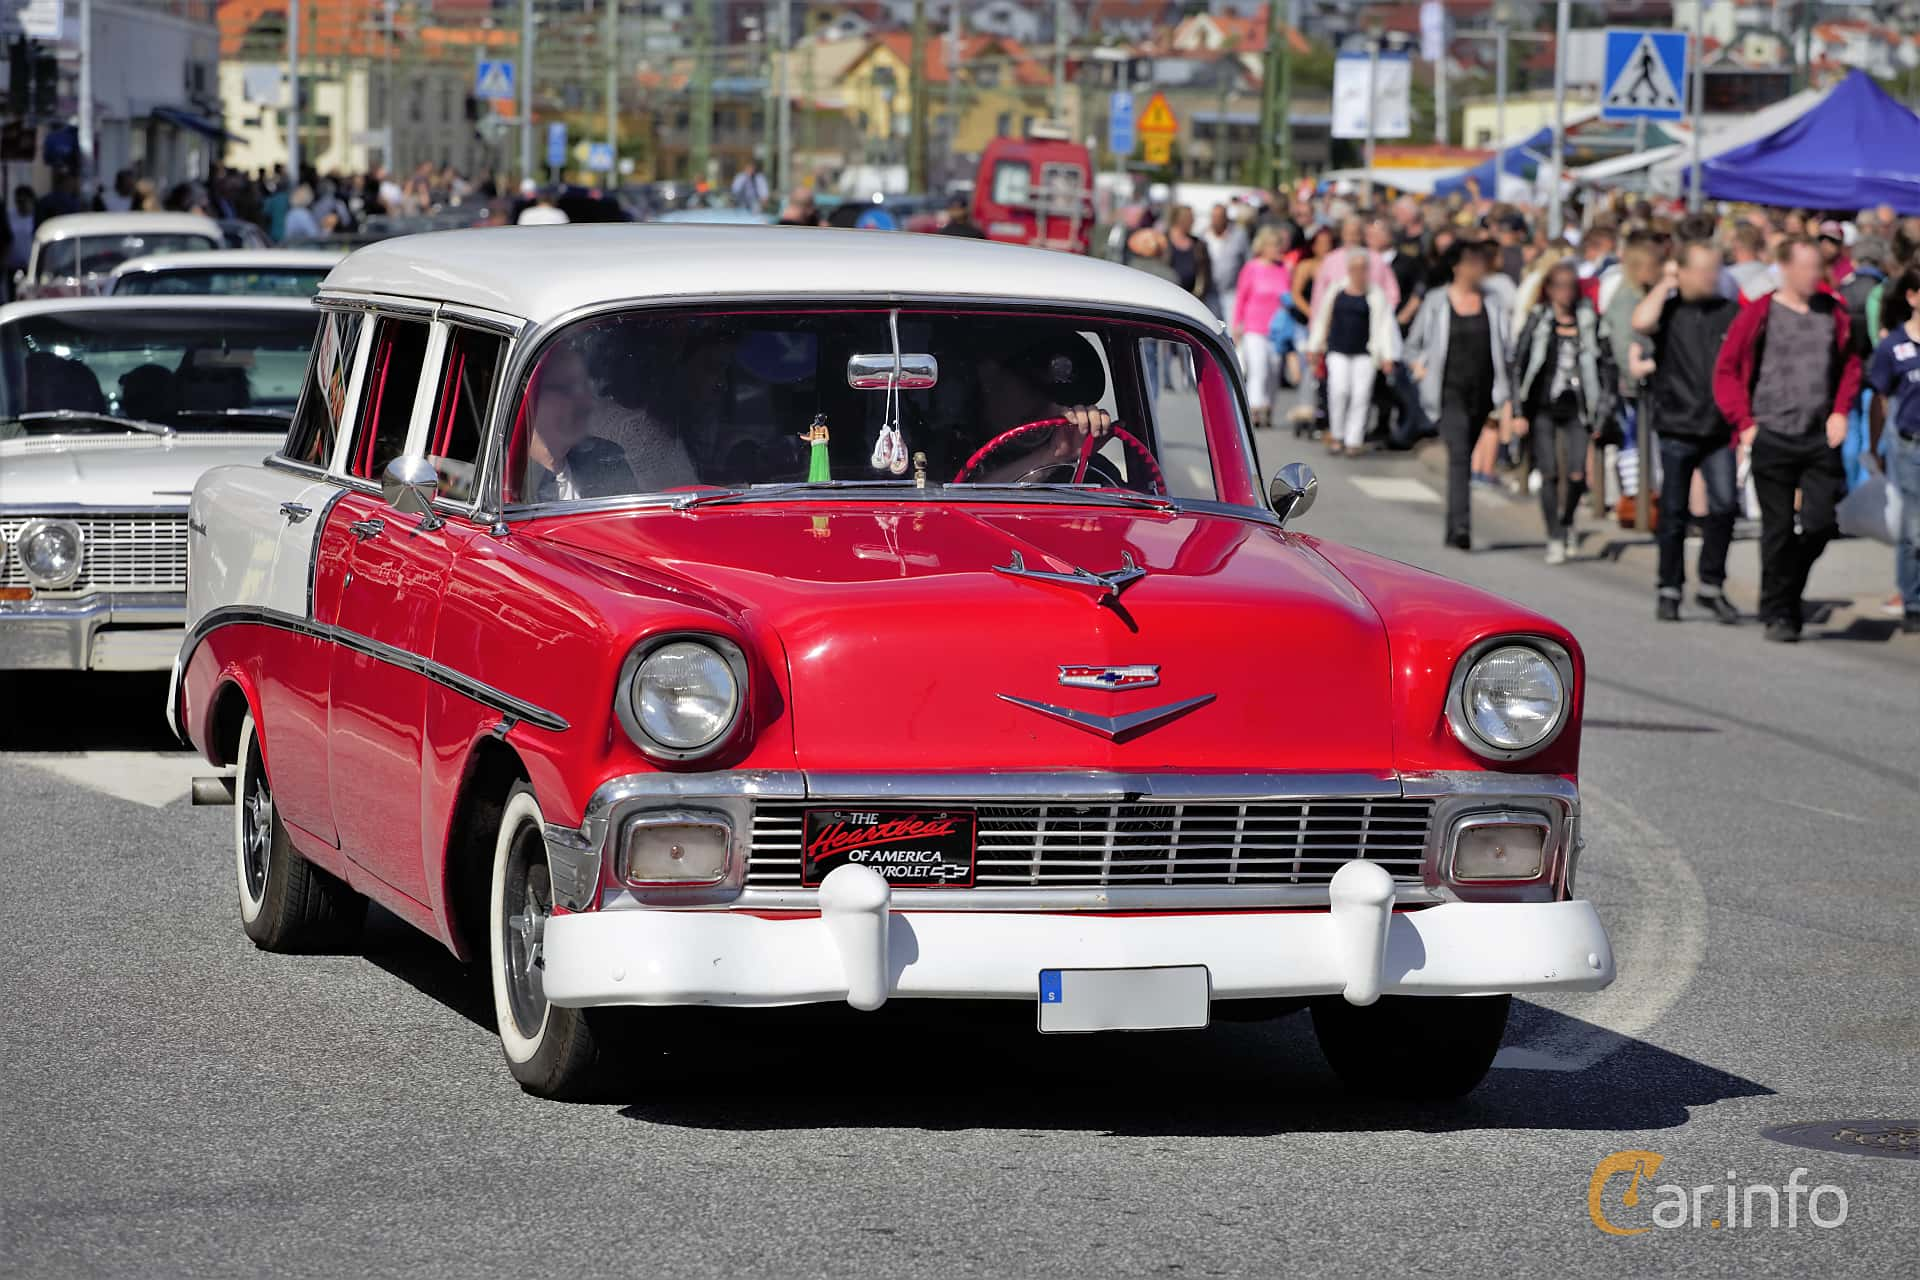 Chevrolet Bel Air Beauville 3.9 Manual, 142hp, 1956 at Cruising Lysekil 2017